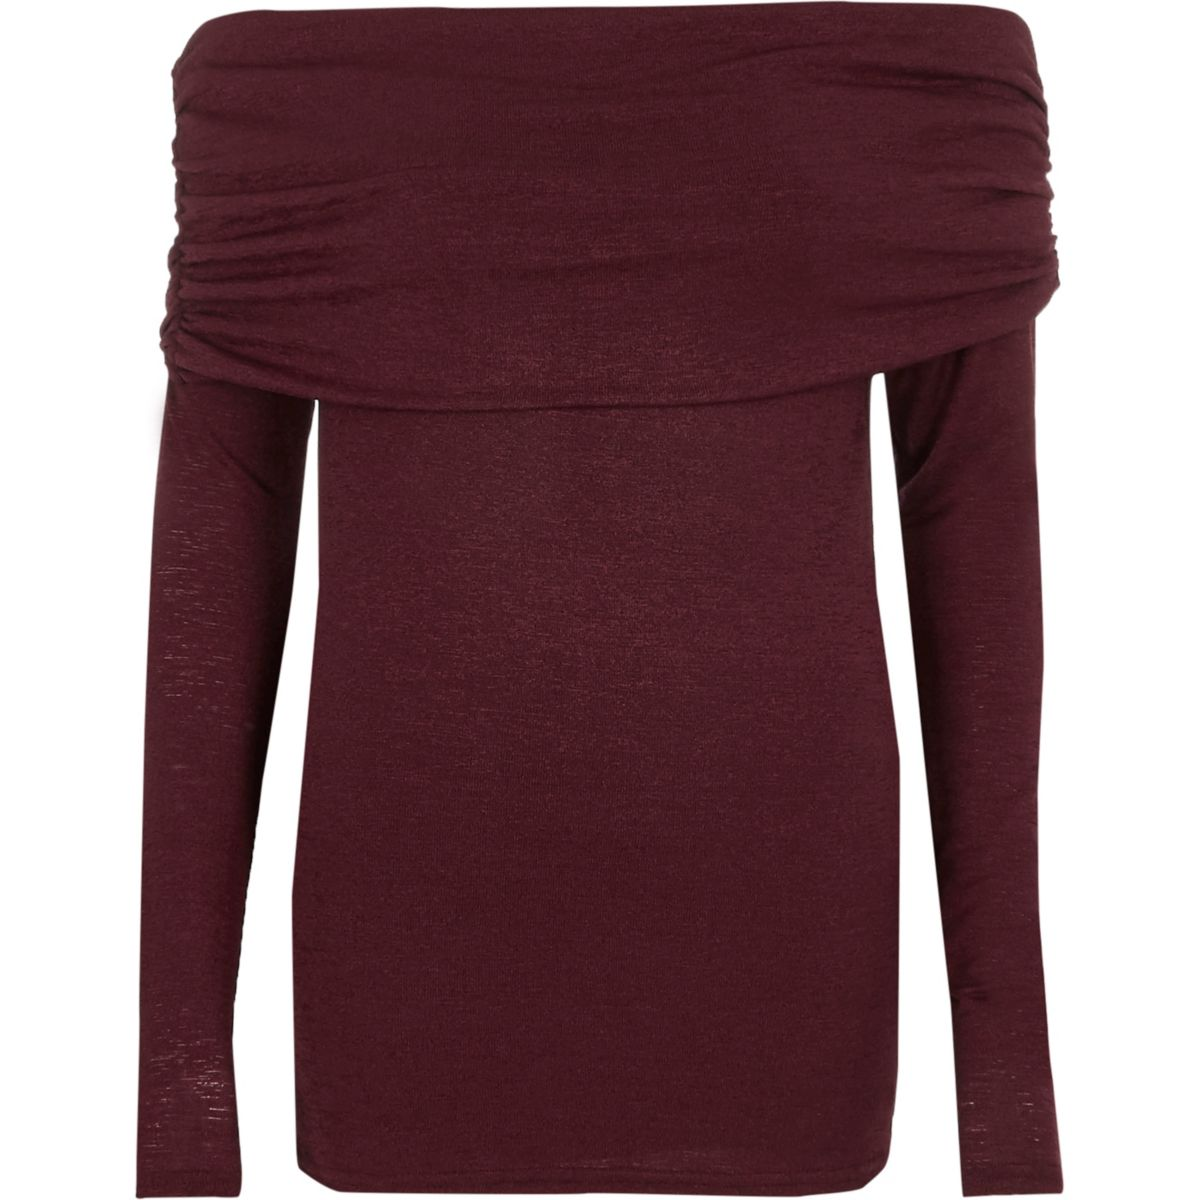 Dark red foldover bardot knitted top